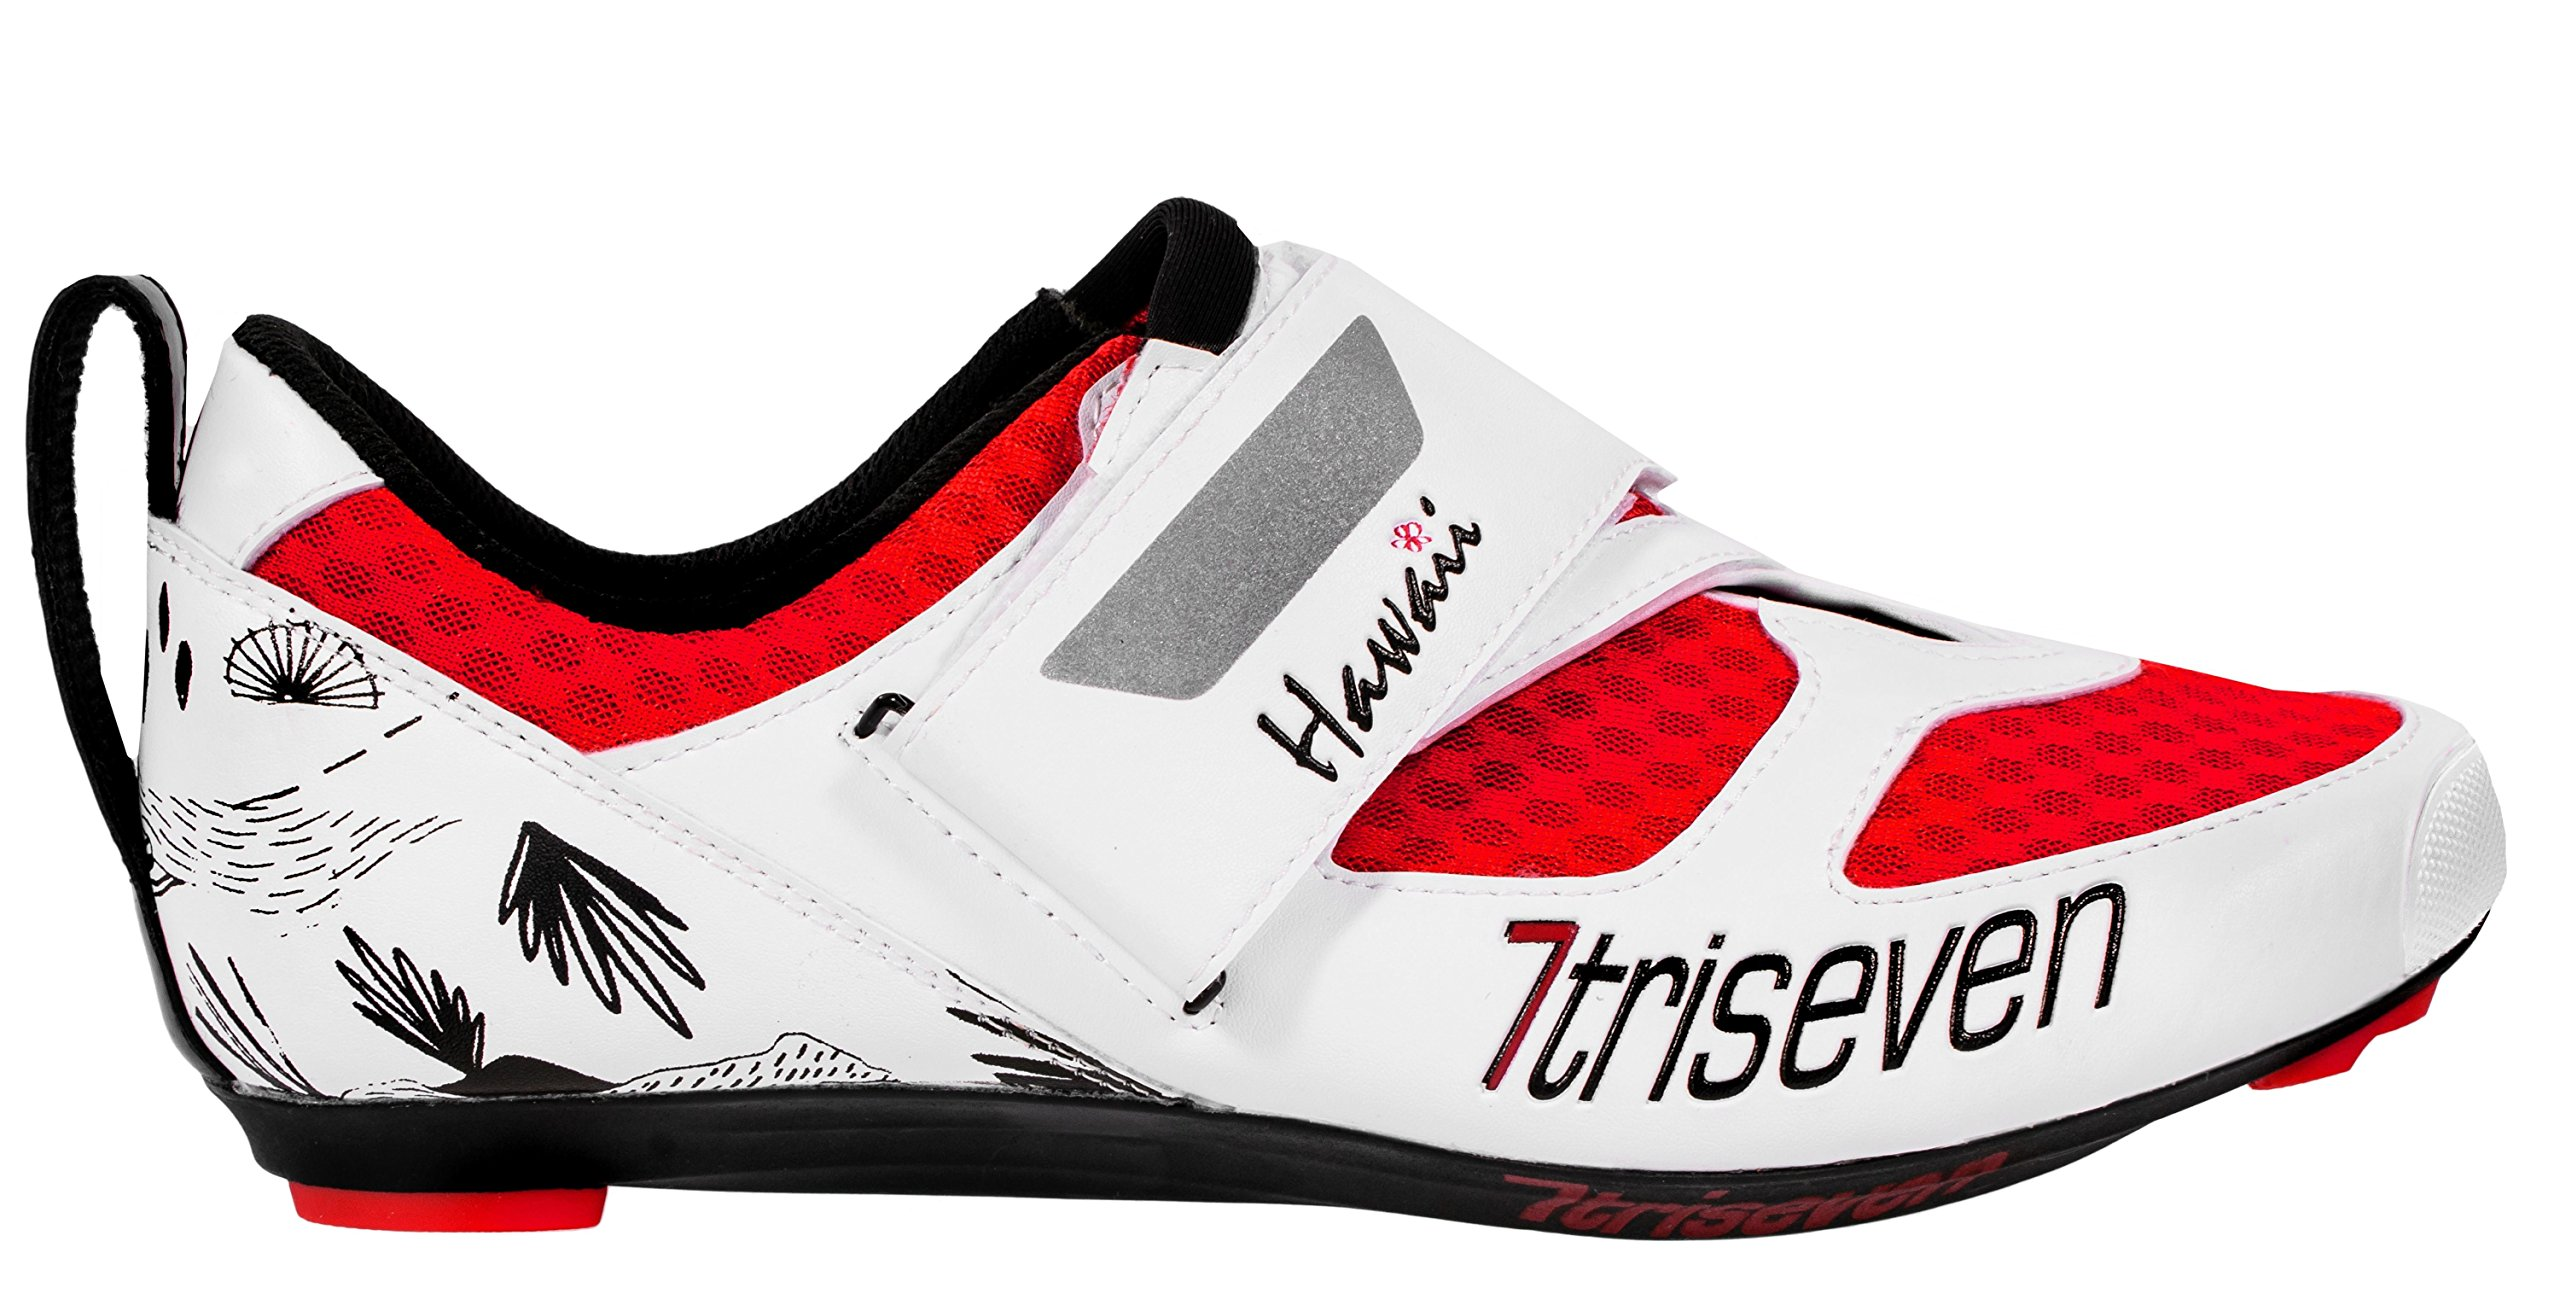 TriSeven Premium Nylon Triathlon Cycling Shoes | Lightweight, Unisex & Fiberglass Sole